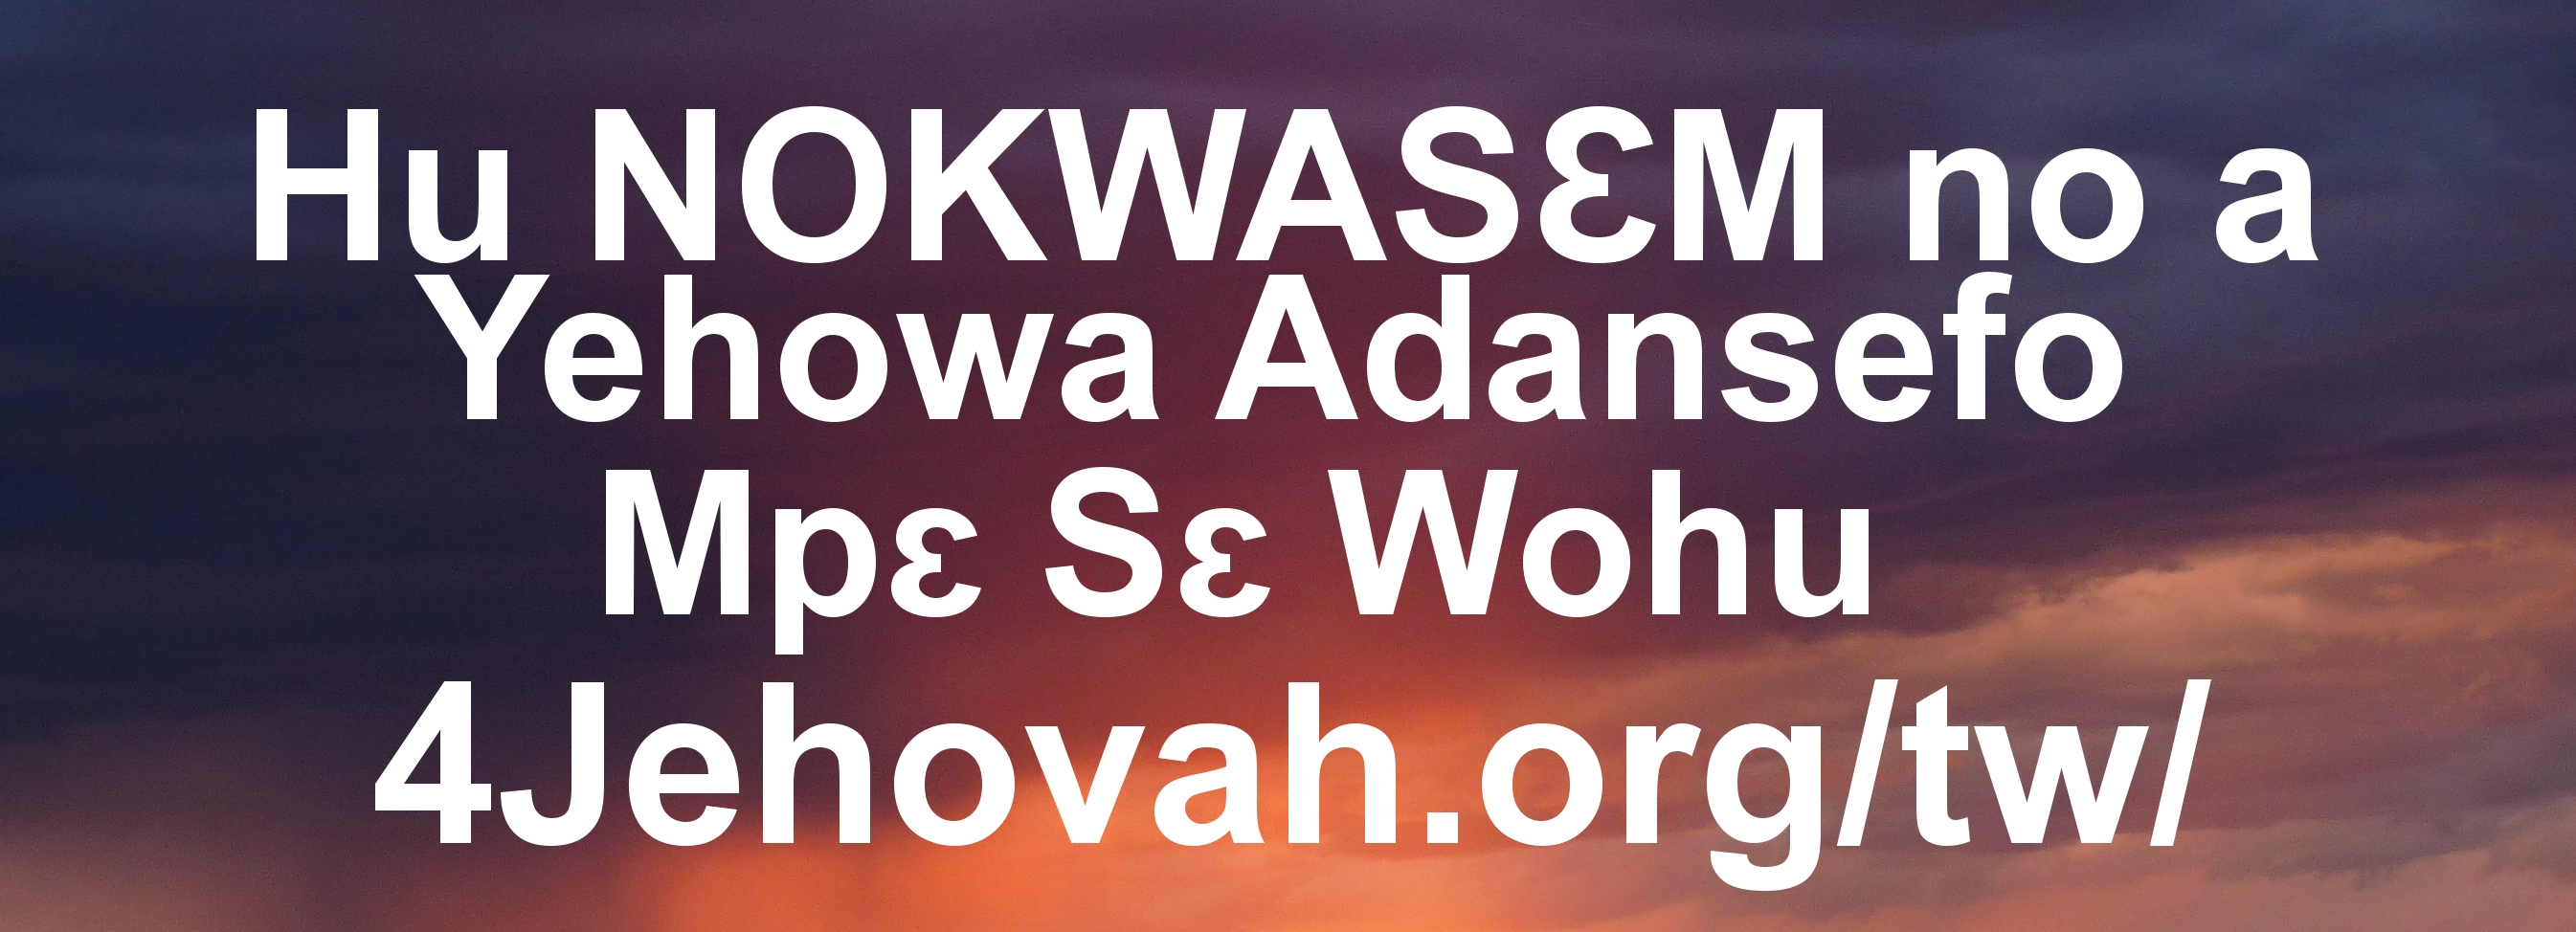 Learn the FACTS Jehovah's Witnesses Do Not Want You to Know 4Jehovah.org